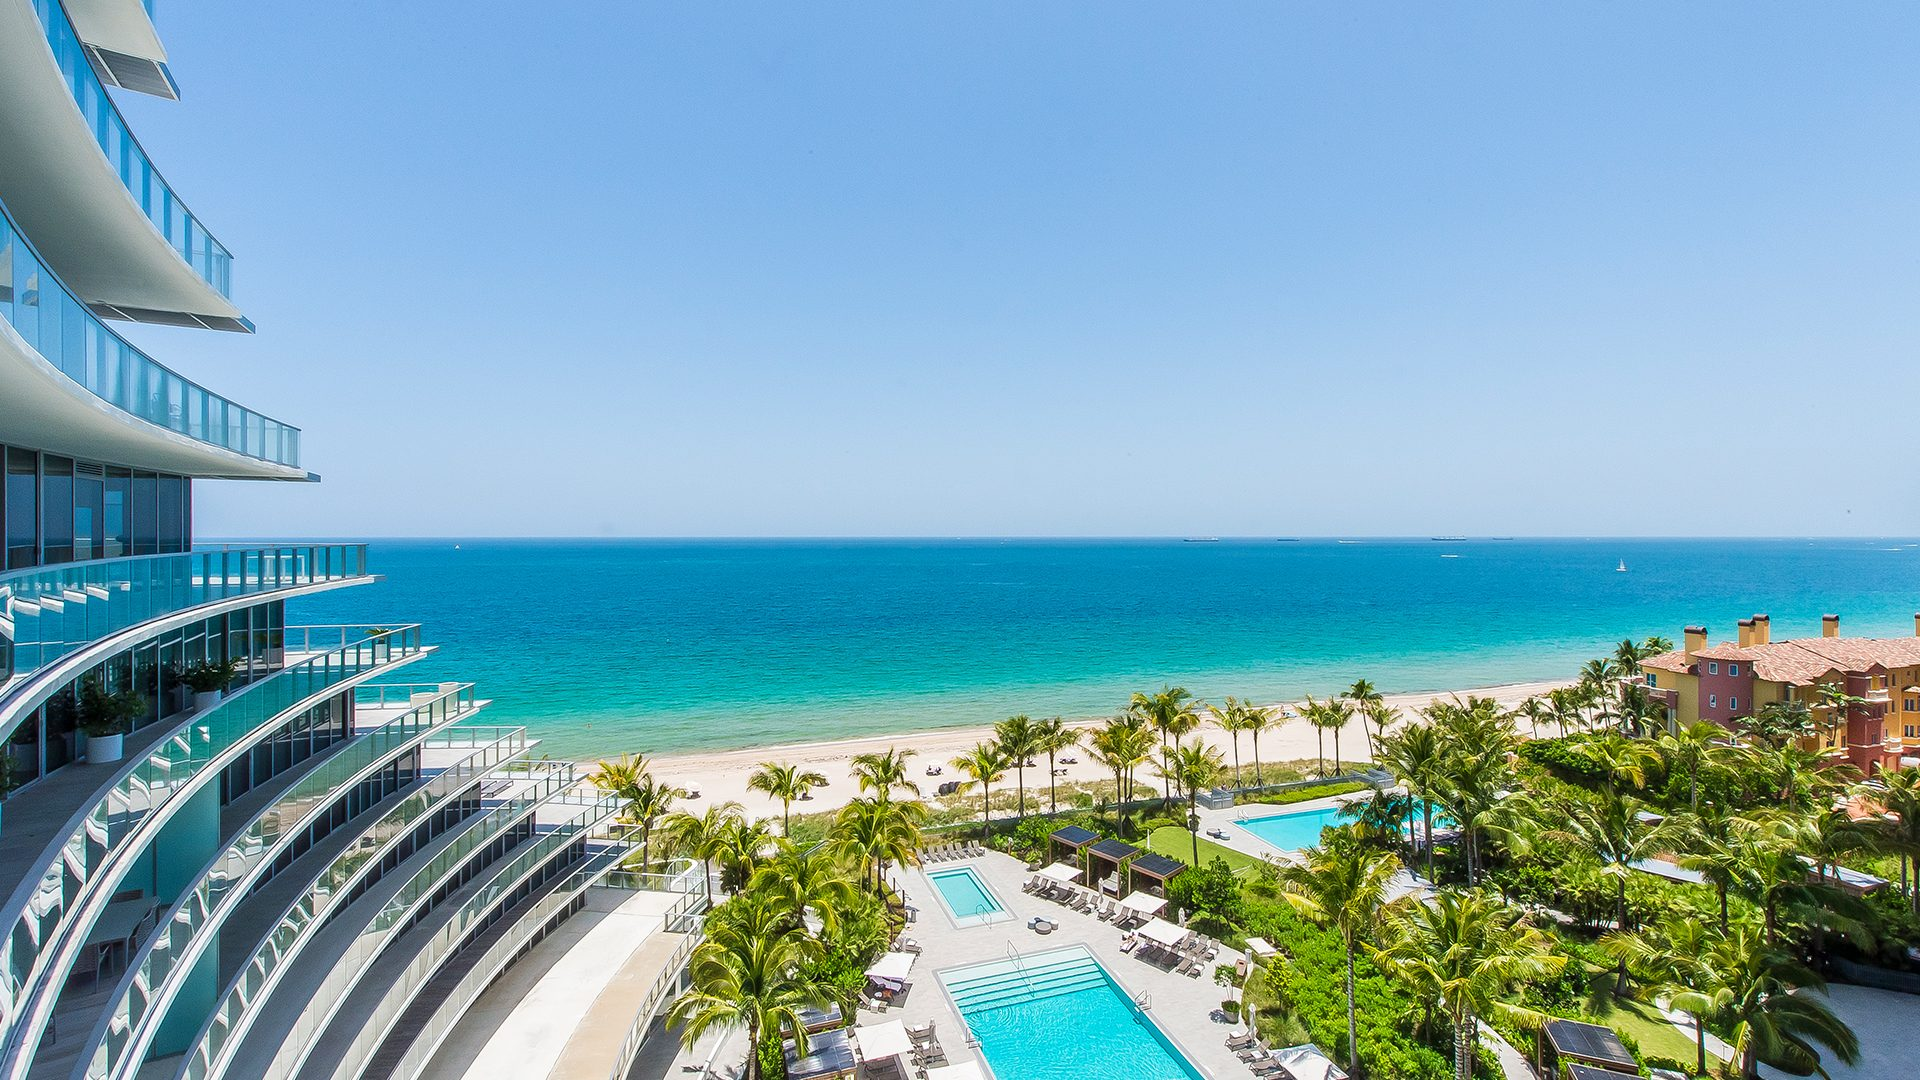 Residence N902 at Auberge Beach Residences and Spa Fort Lauderdale, FL 33305